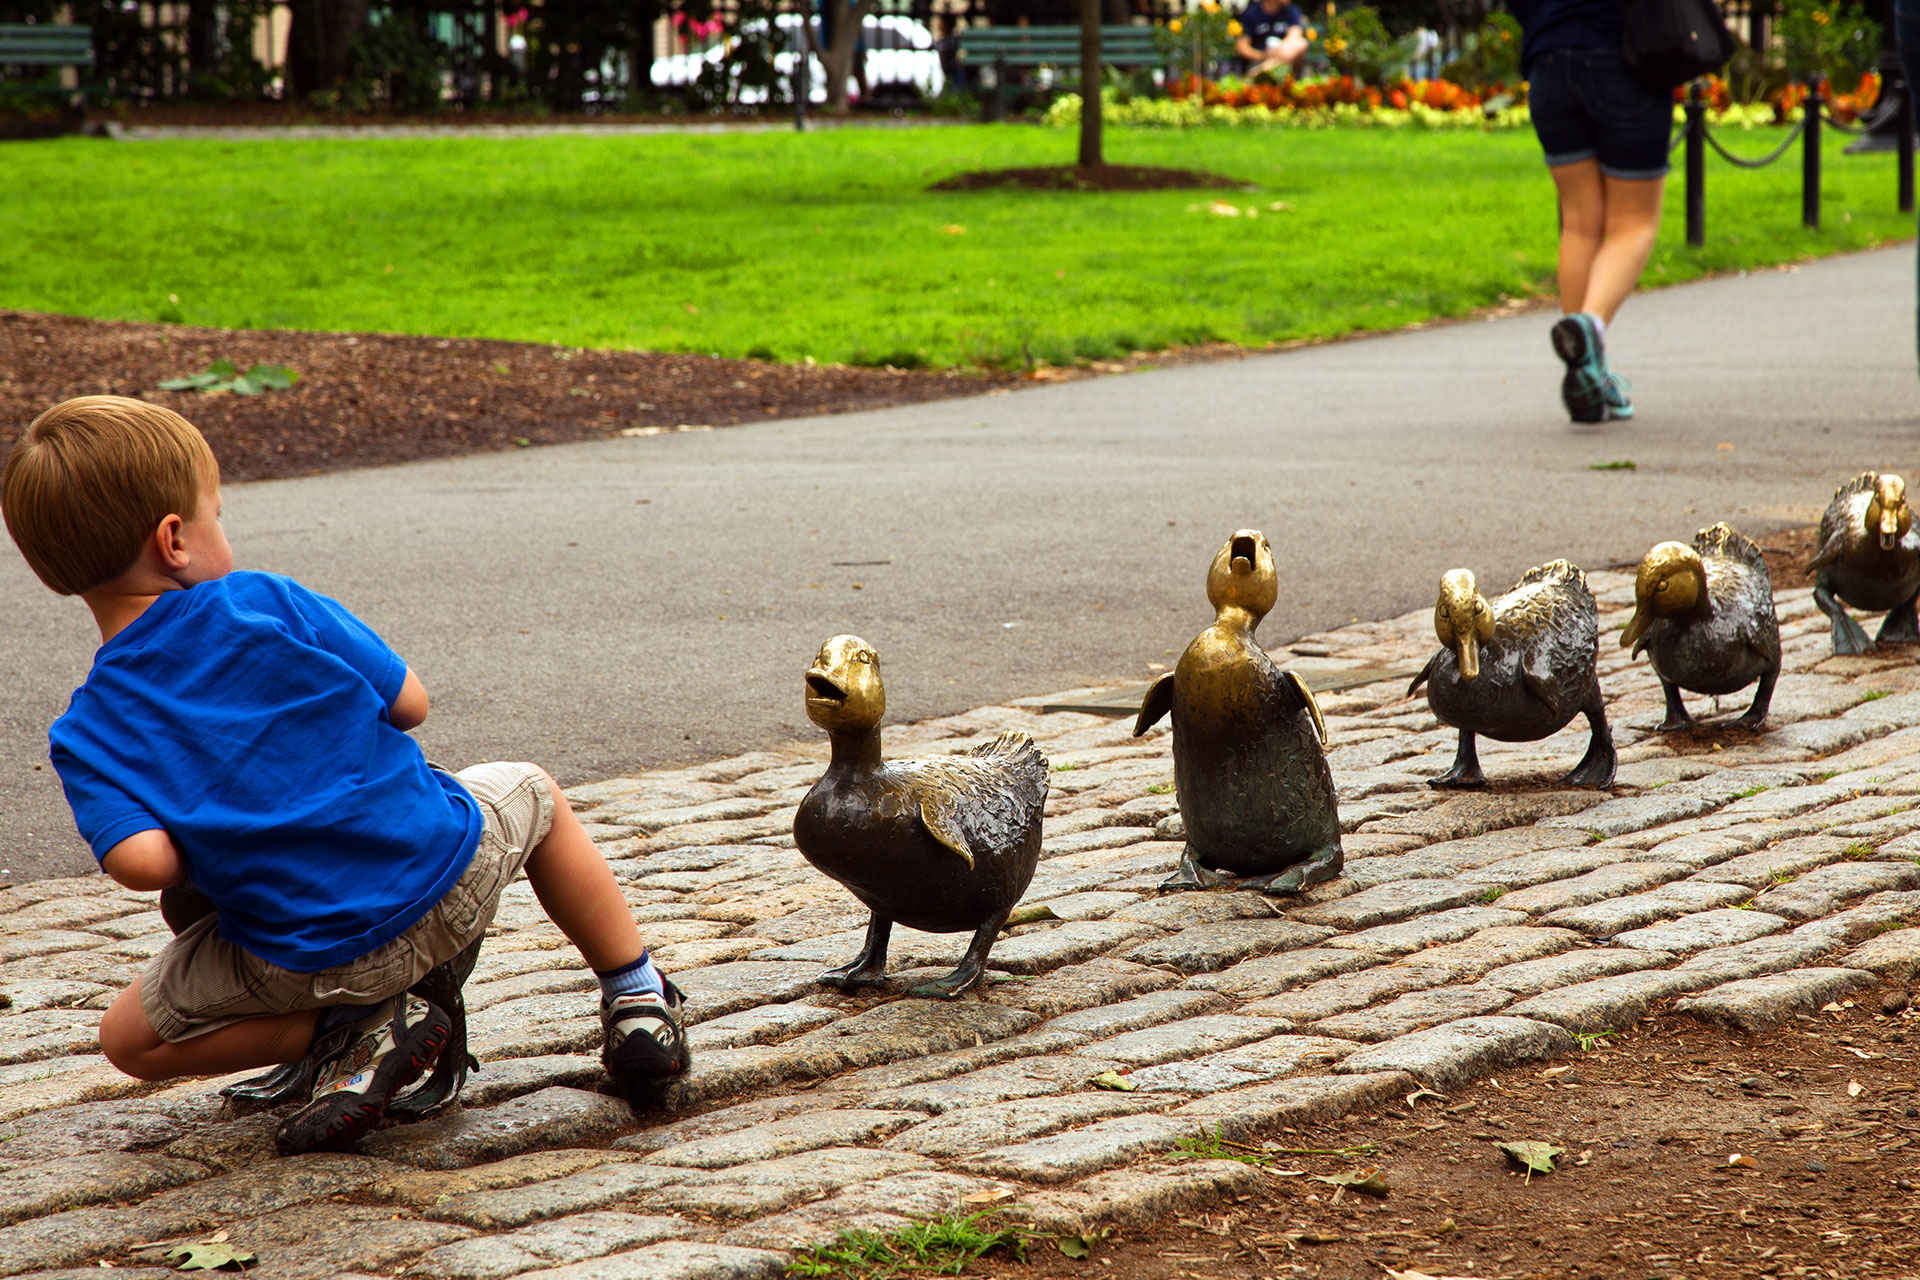 Little Boy Playing With Boston Ducks; Courtesy of Greater Boston Convention & Visitors Bureau